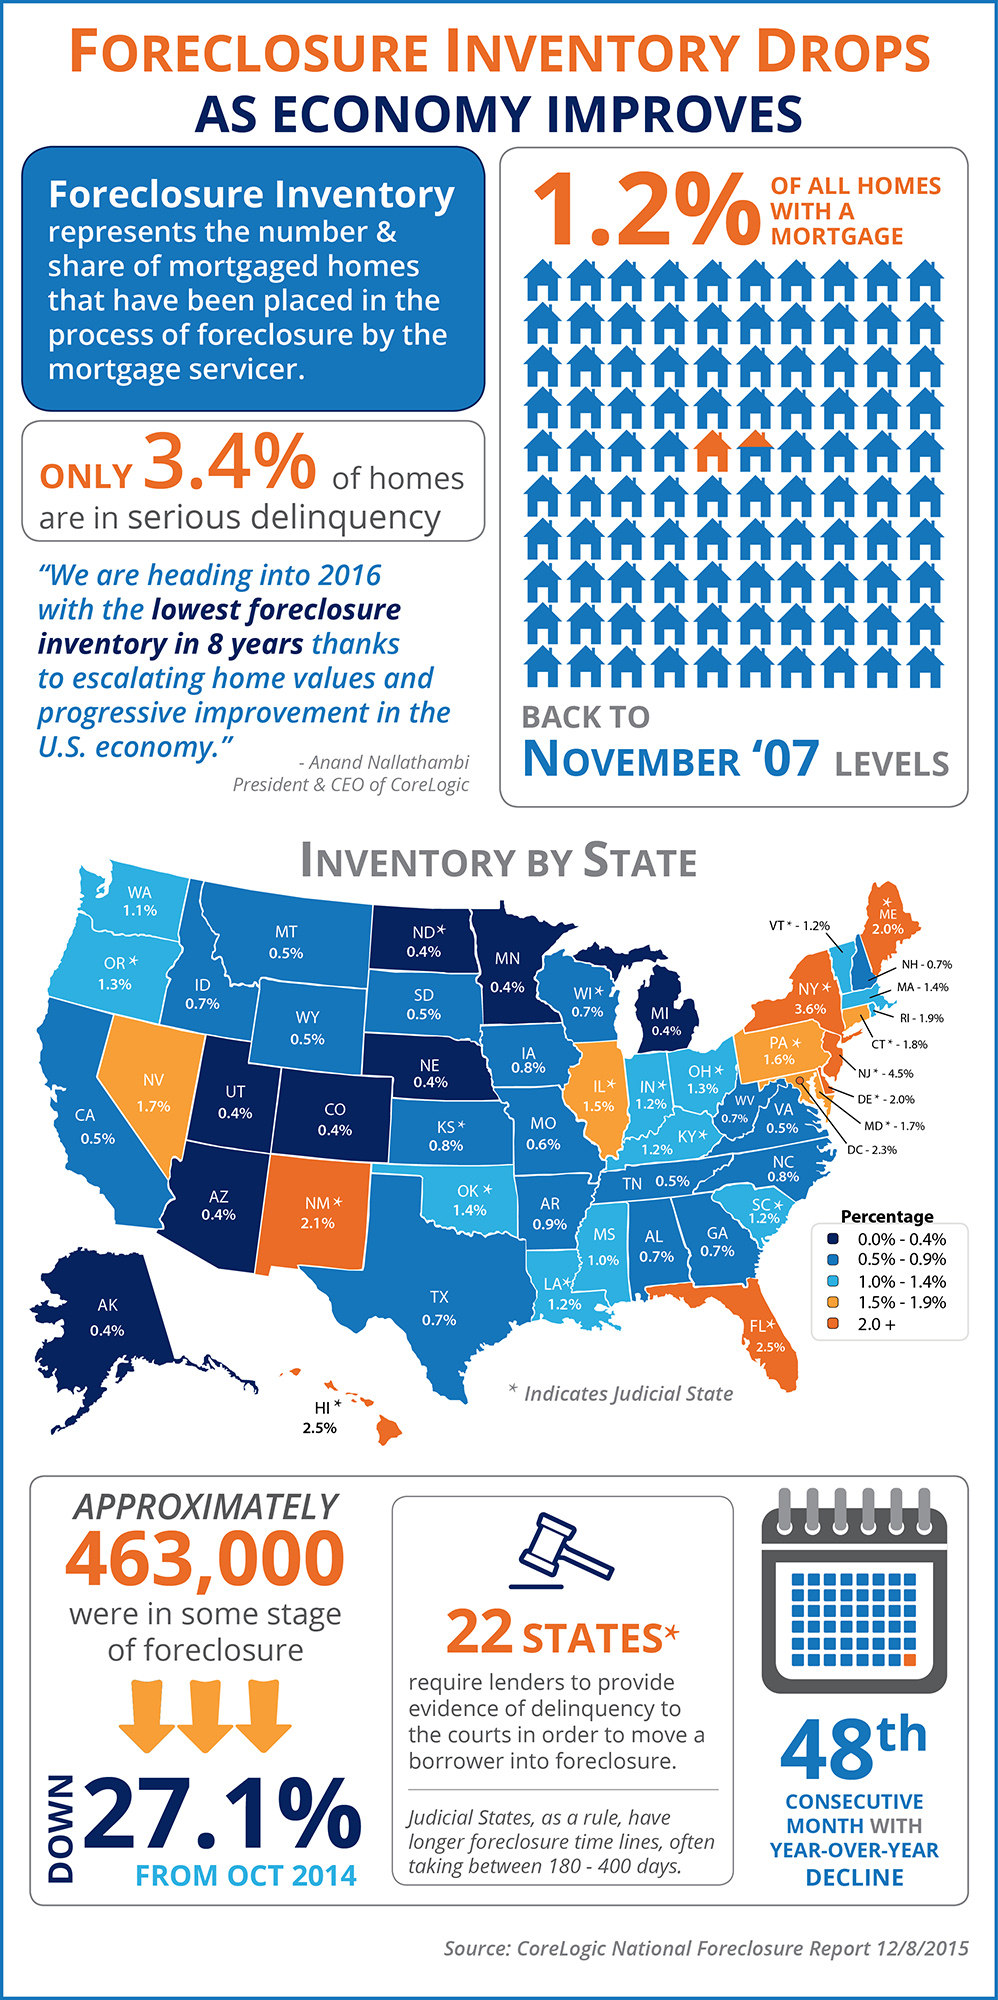 Foreclosure Inventory Drops As Economy Improves [INFOGRAPHIC] | Simplifying The Market